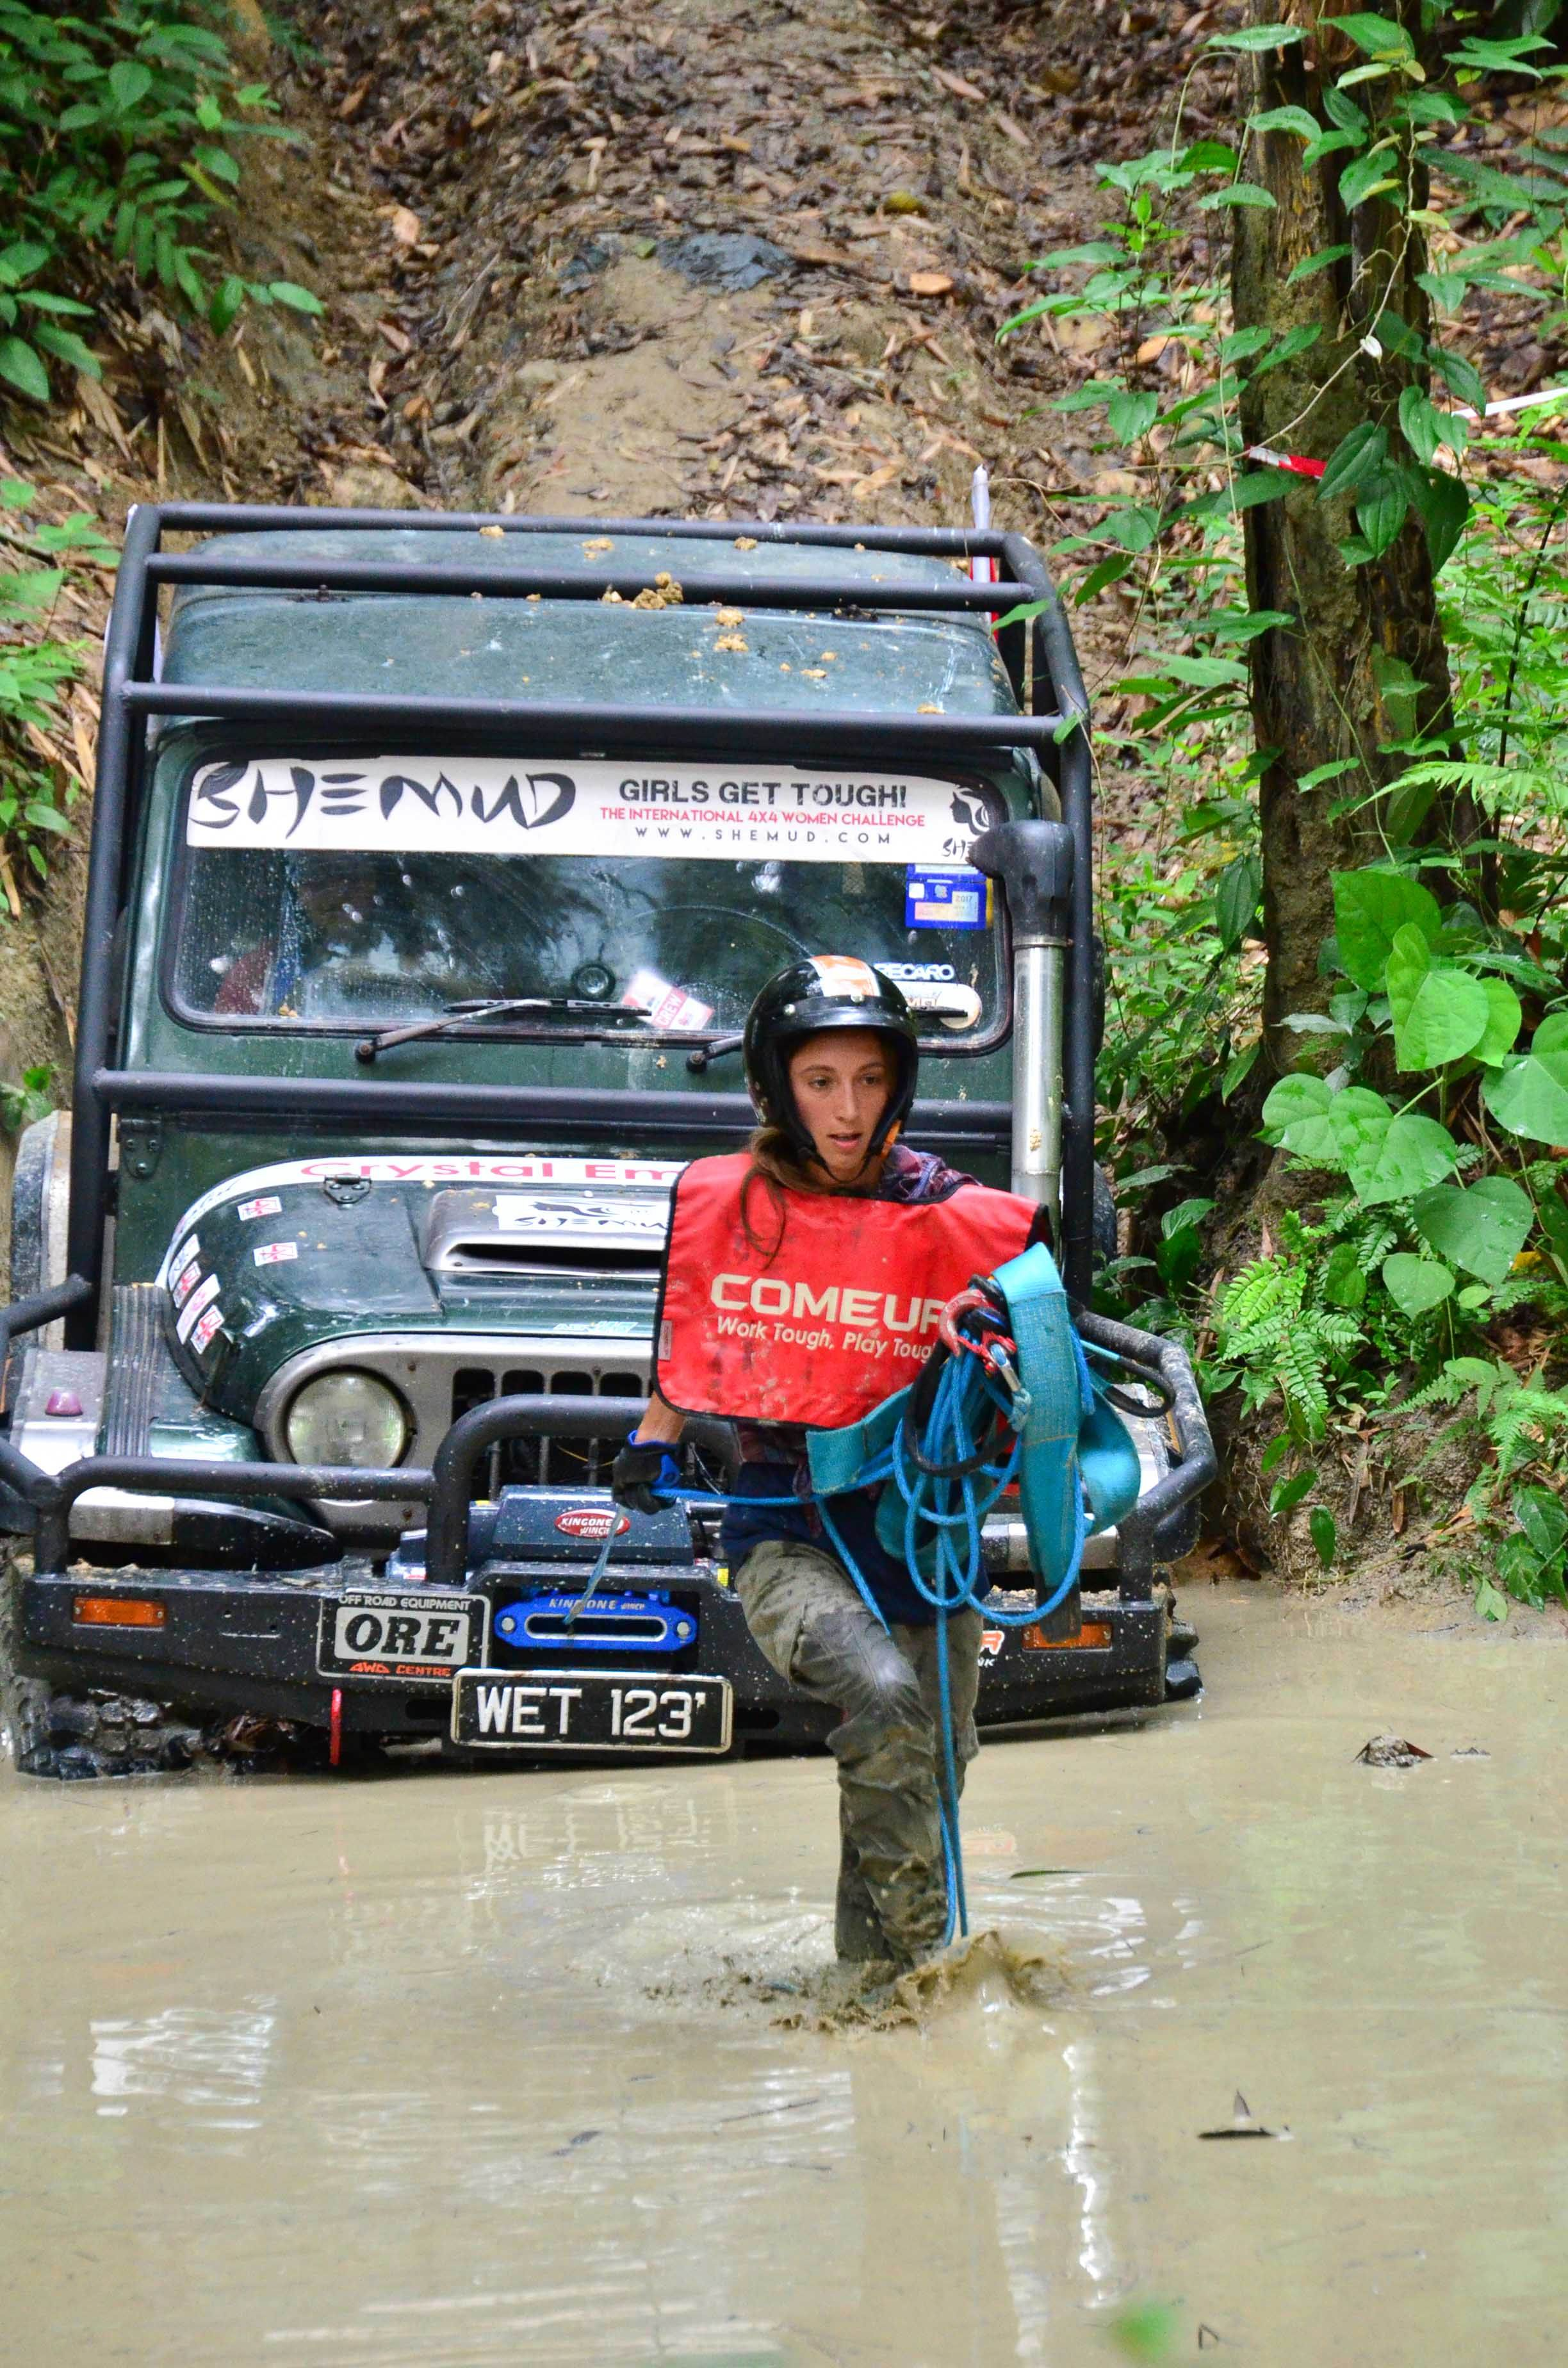 Shemud: North Beach resident to be first Aussie to compete in all women extreme 4×4 challenge